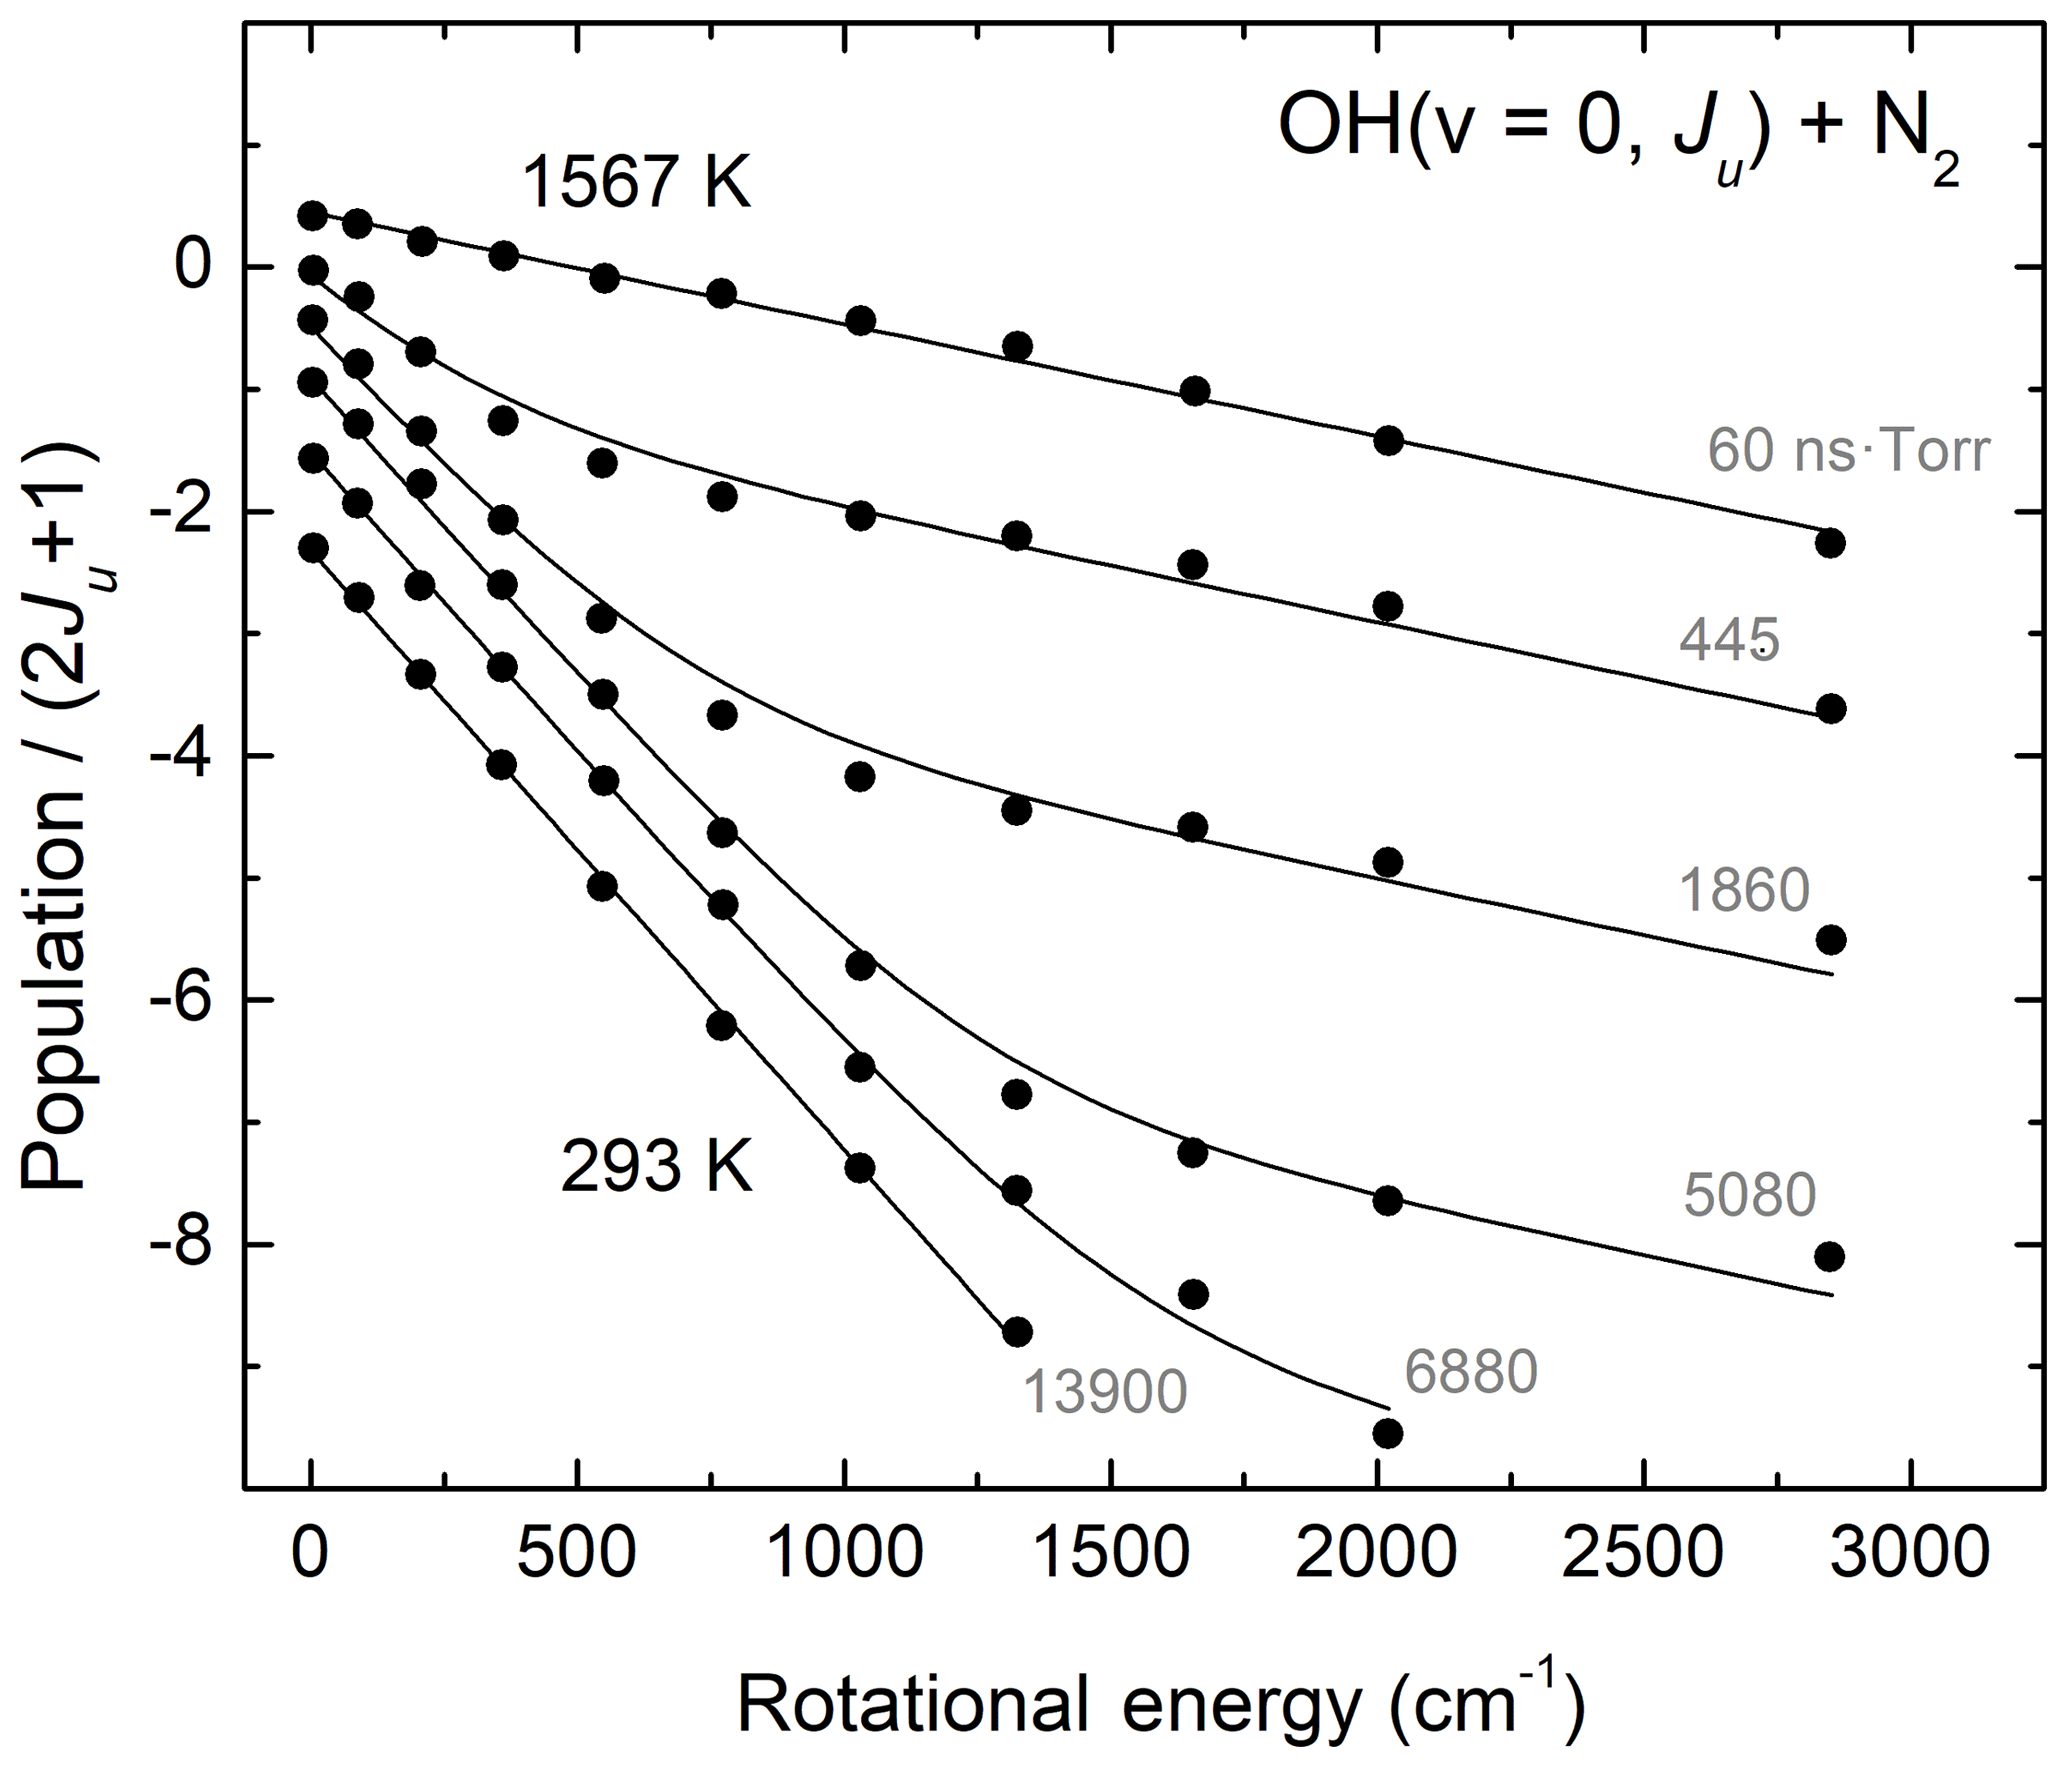 ACP - Technical note: Bimodality in mesospheric OH rotational